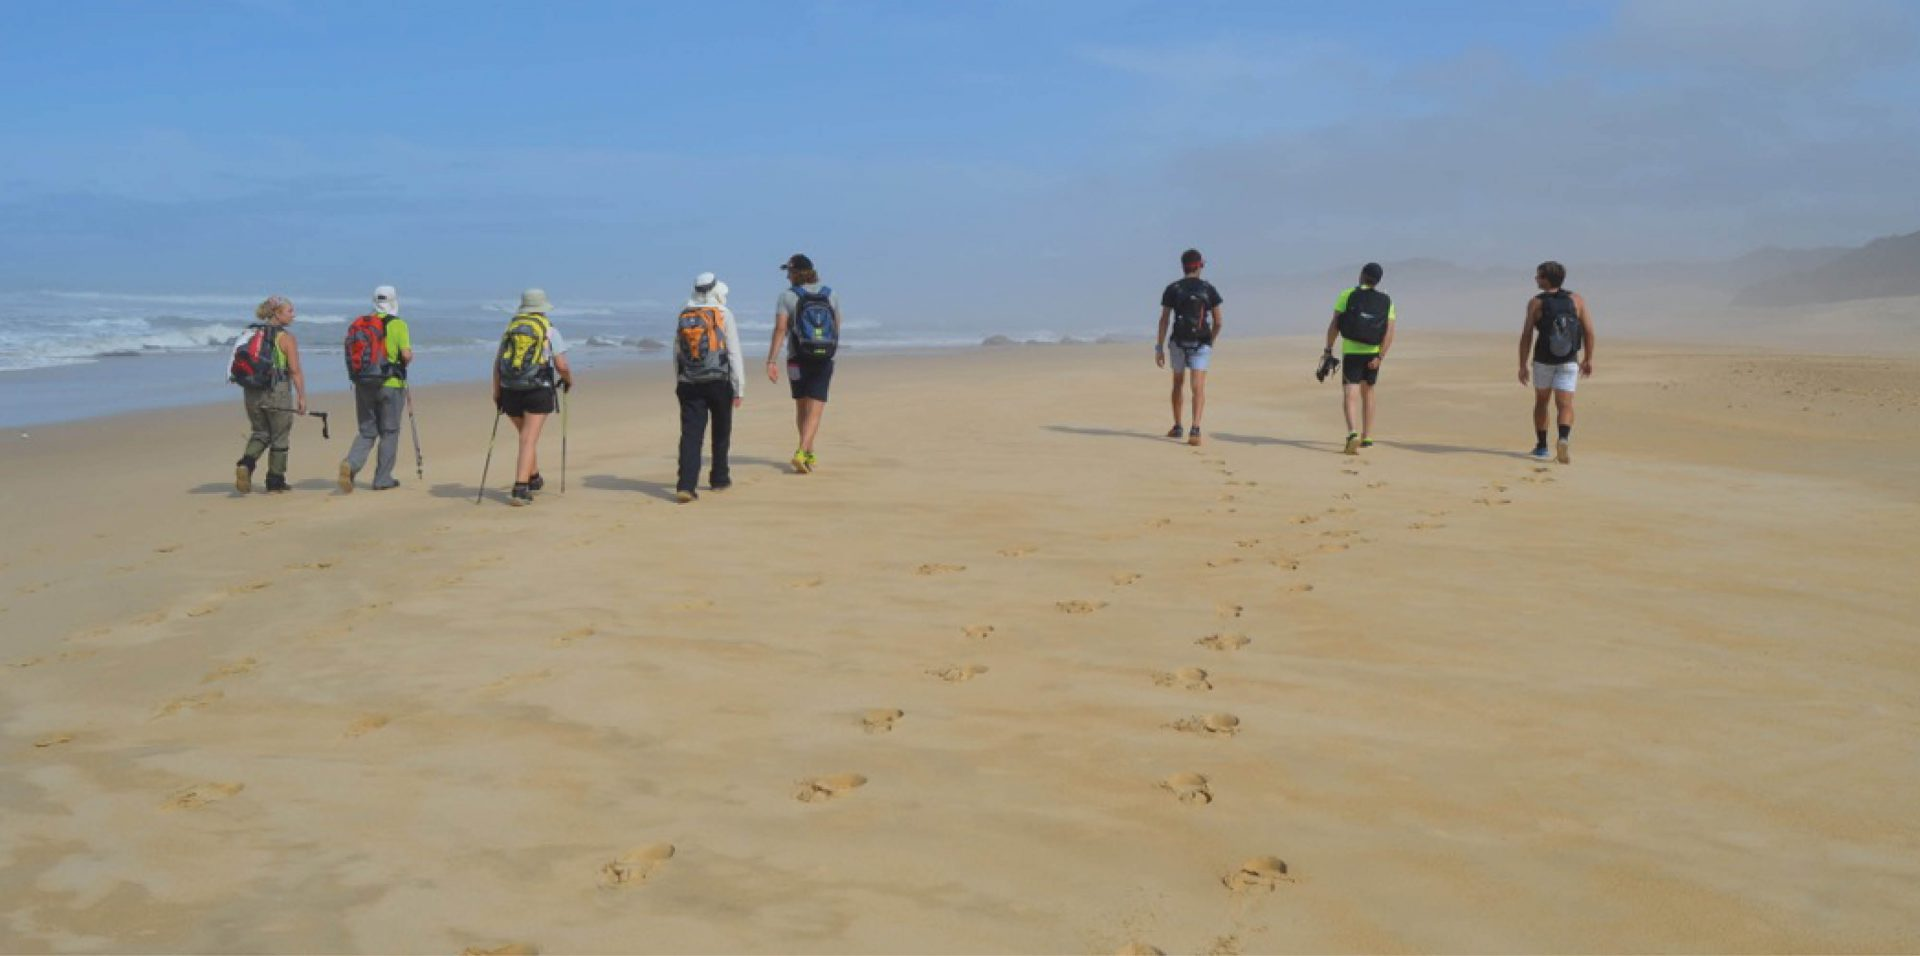 Hikers on the beach